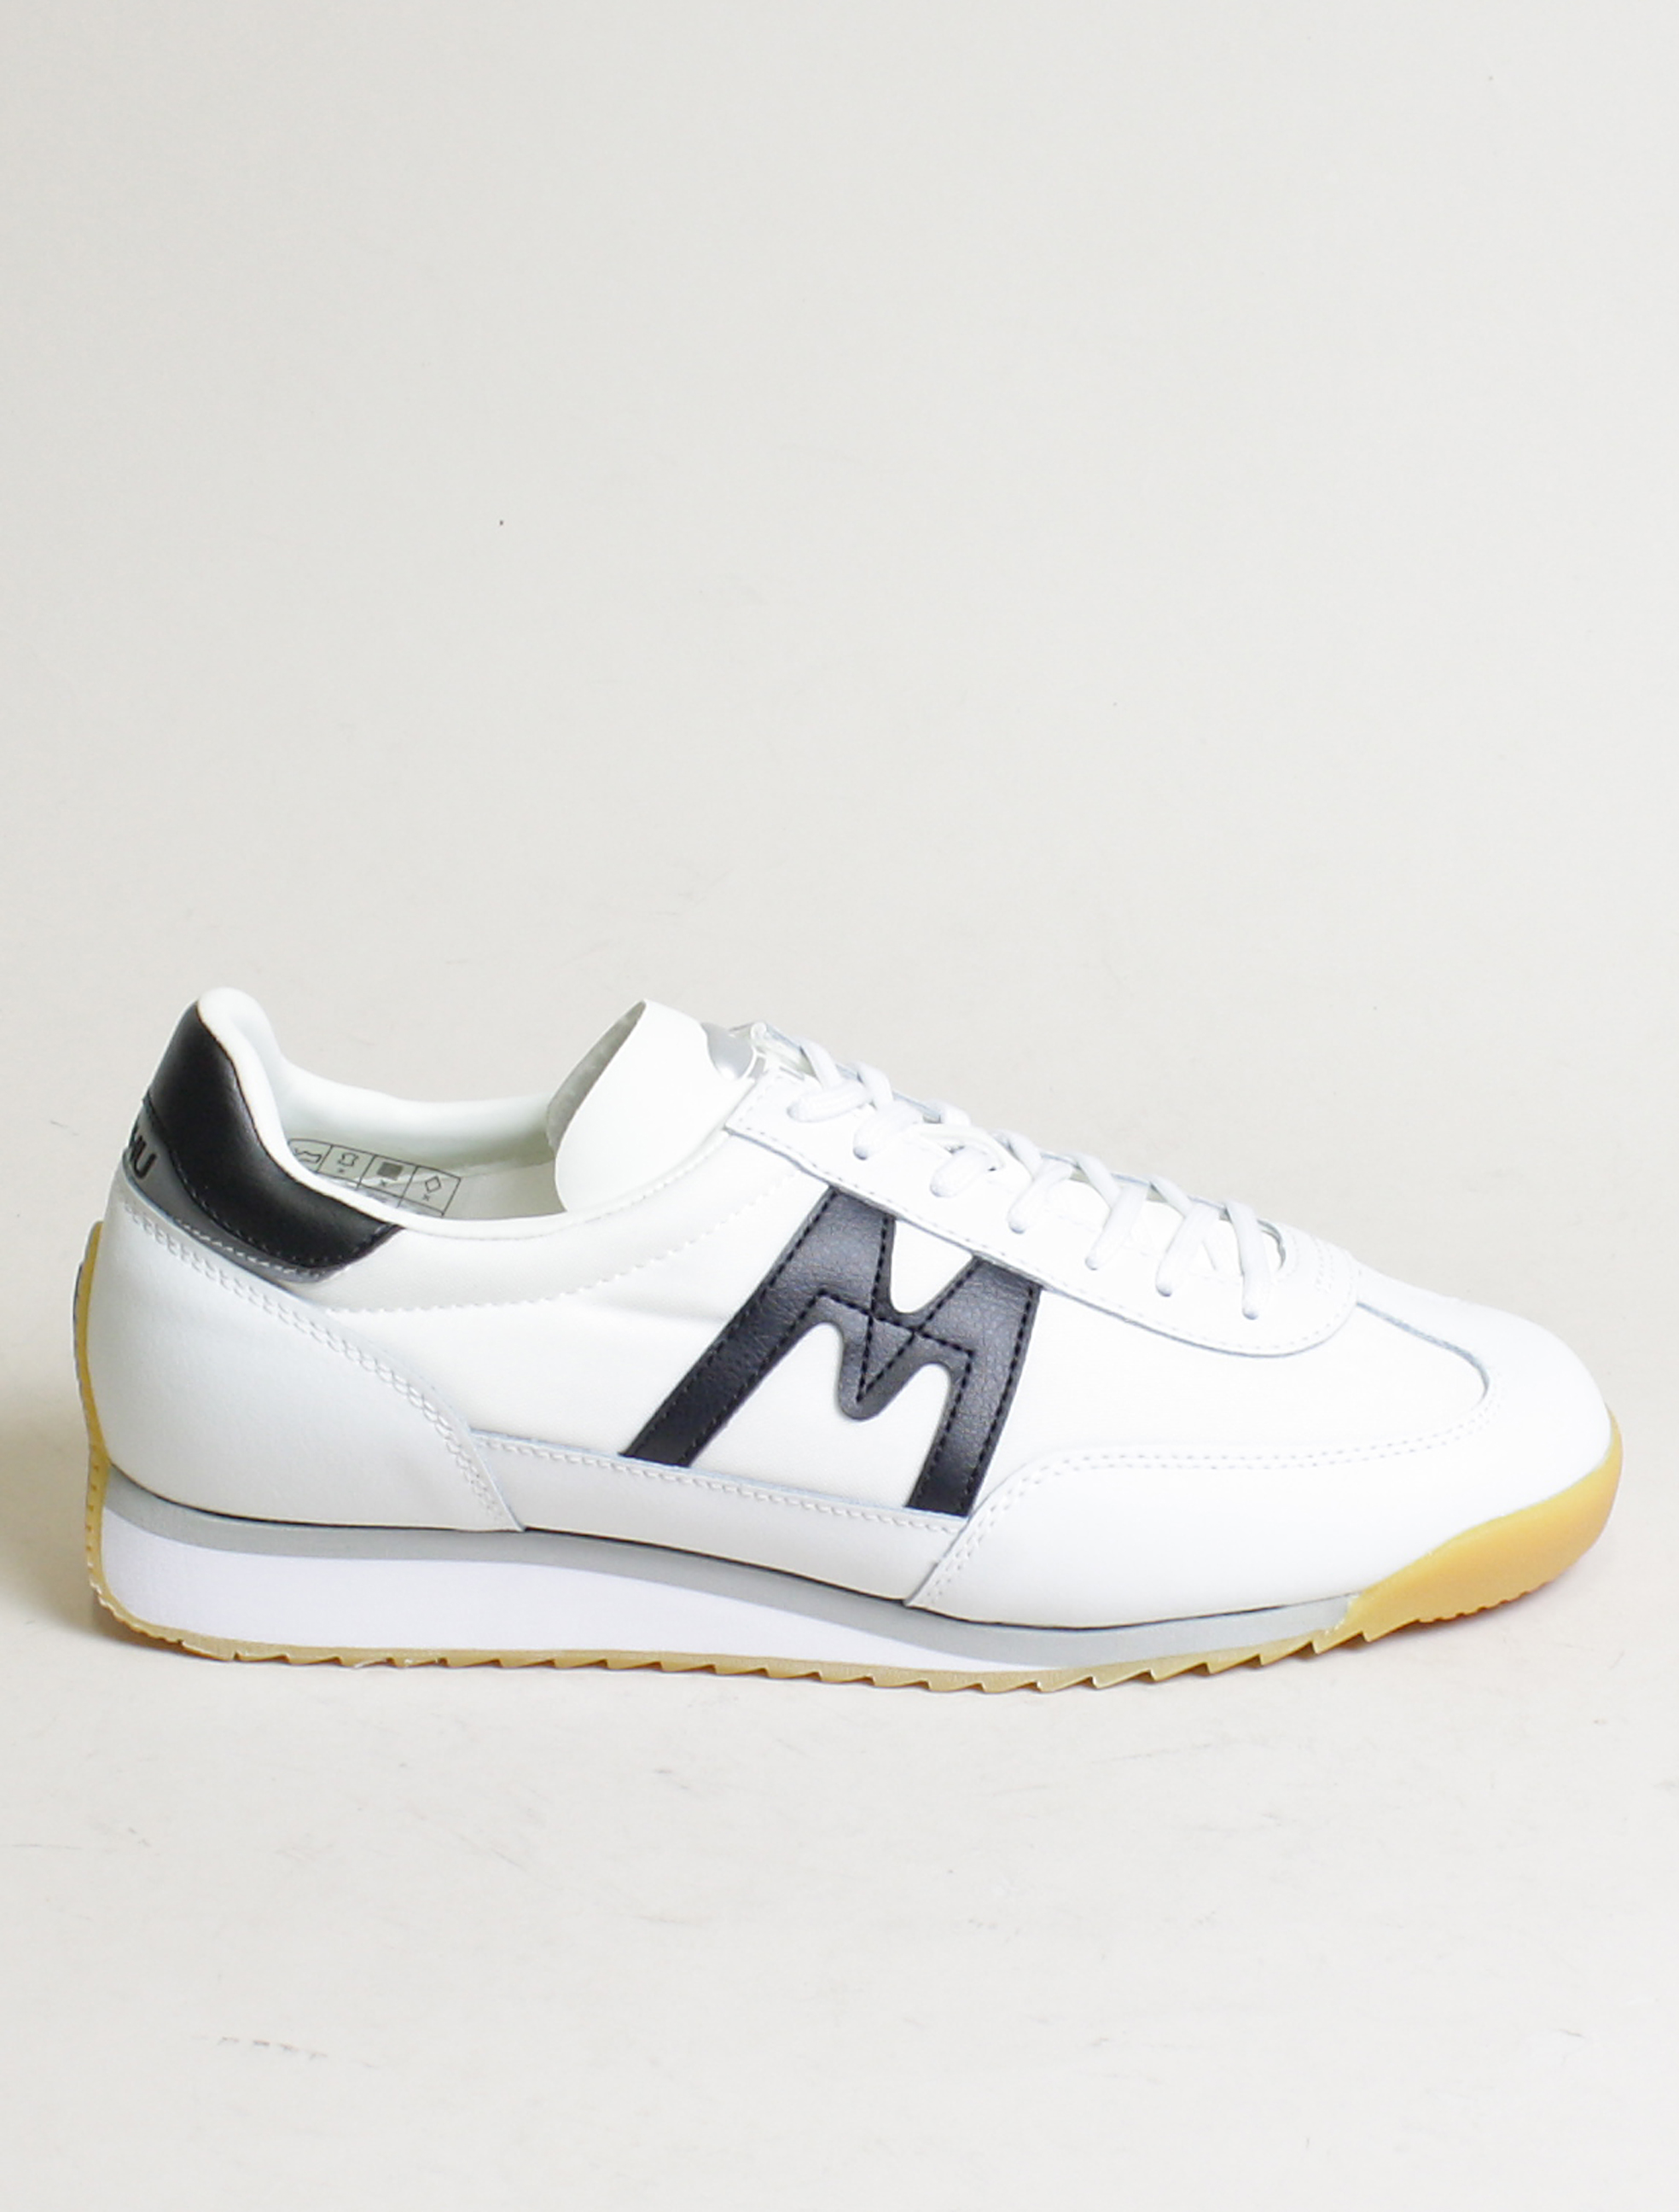 Karhu sneakers Championair white black